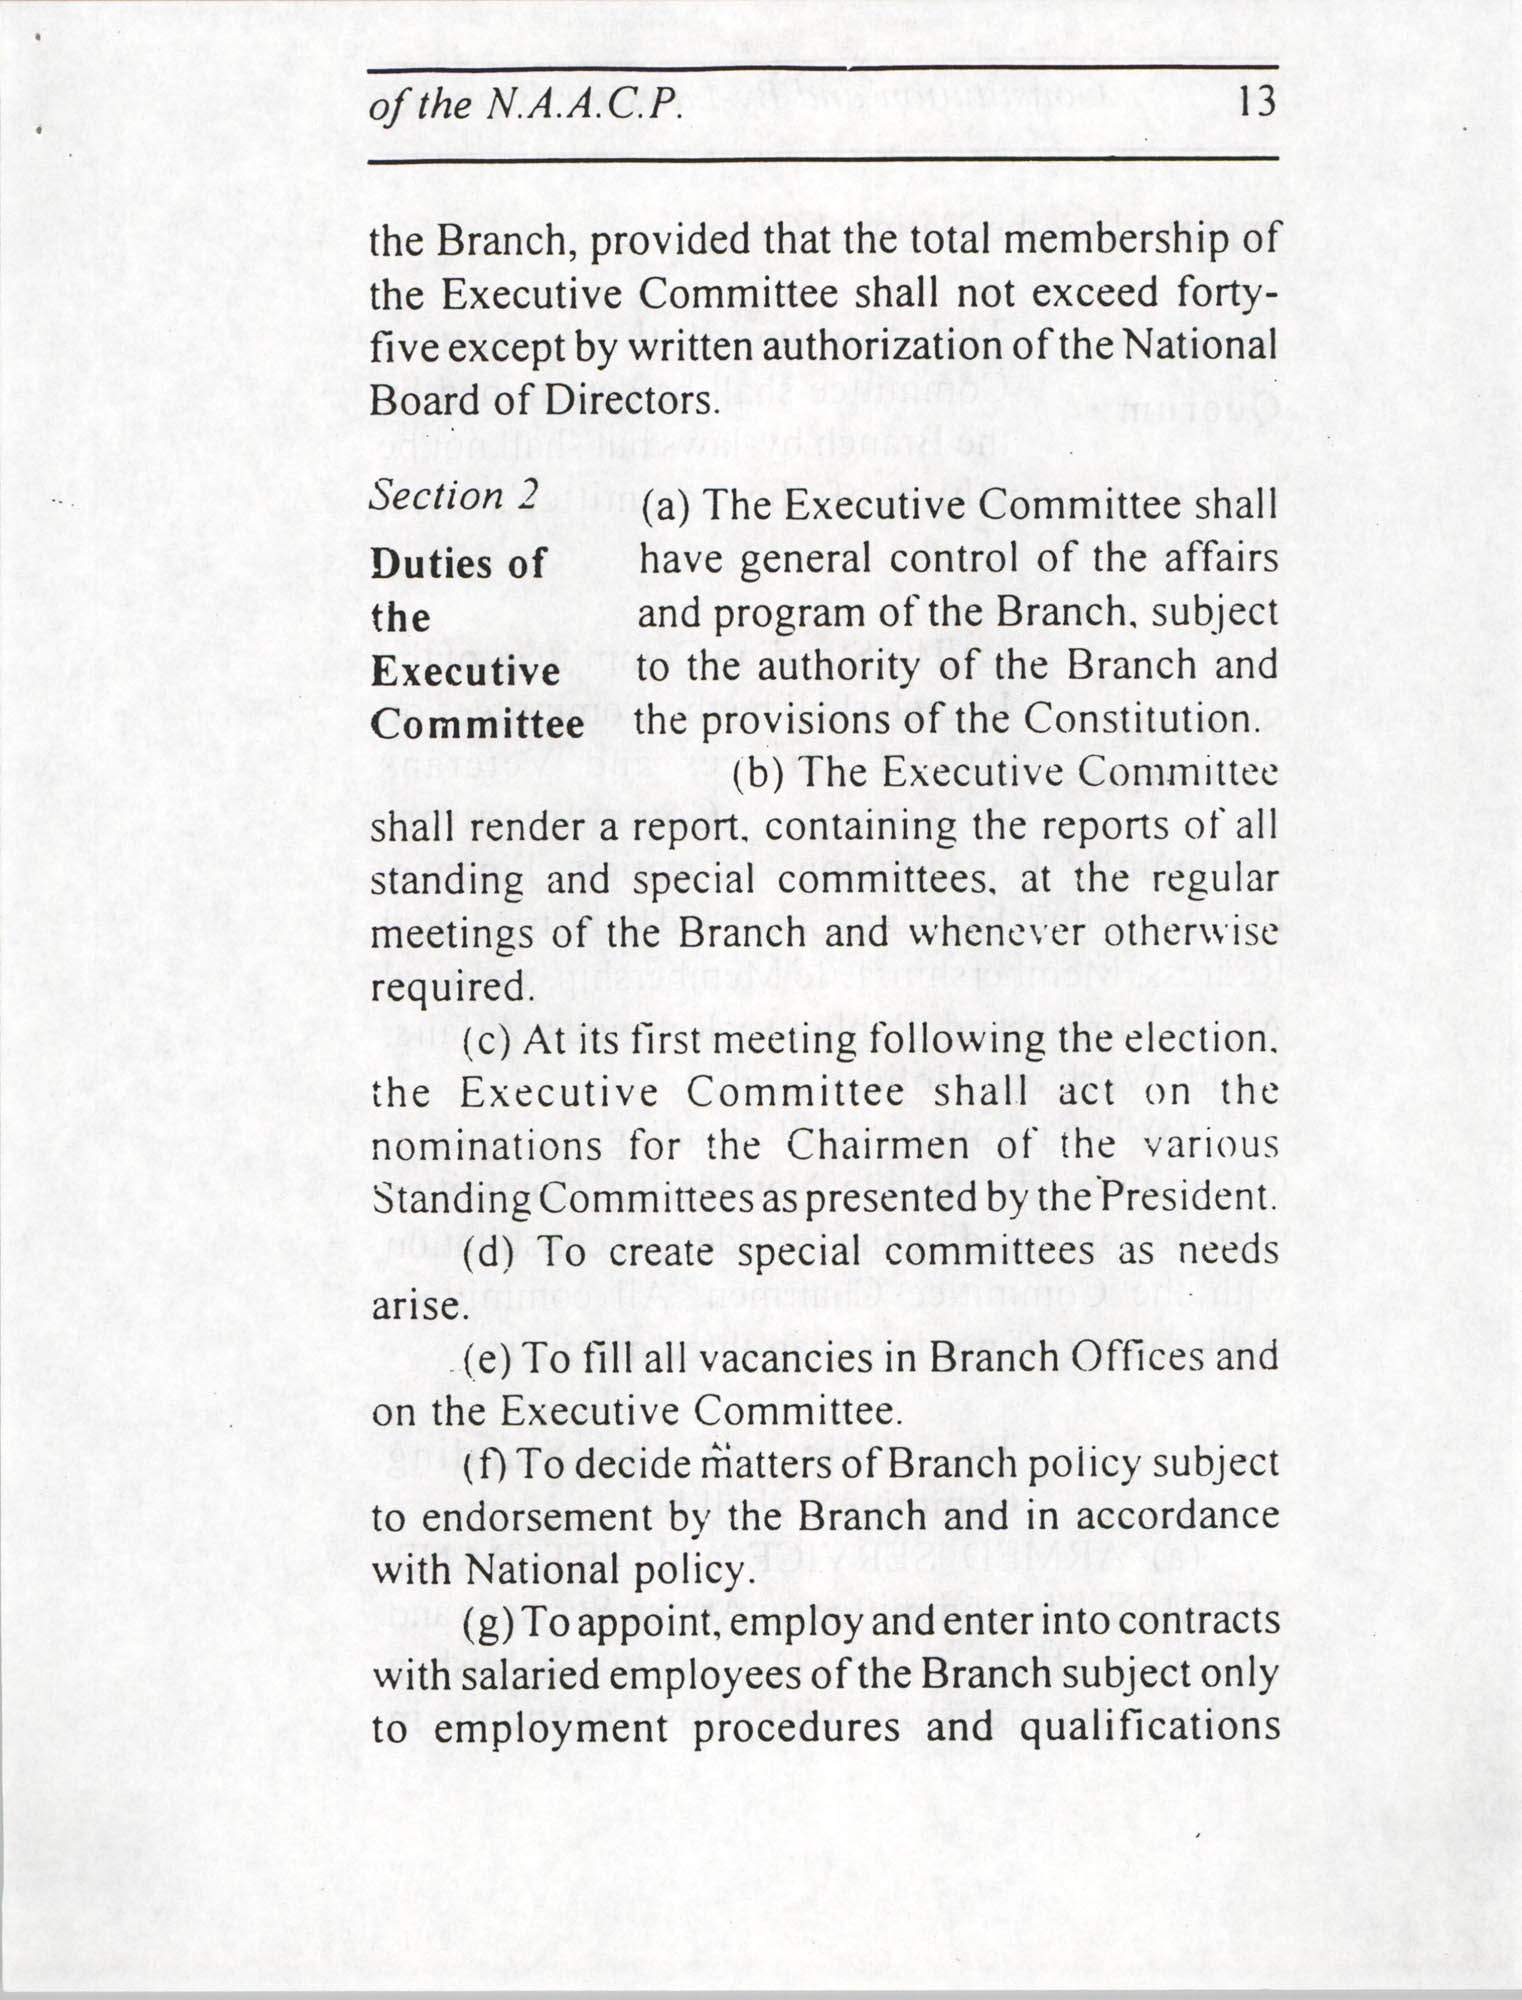 Constitution and By-Laws for Branches of the NAACP, July 1994, Page 13